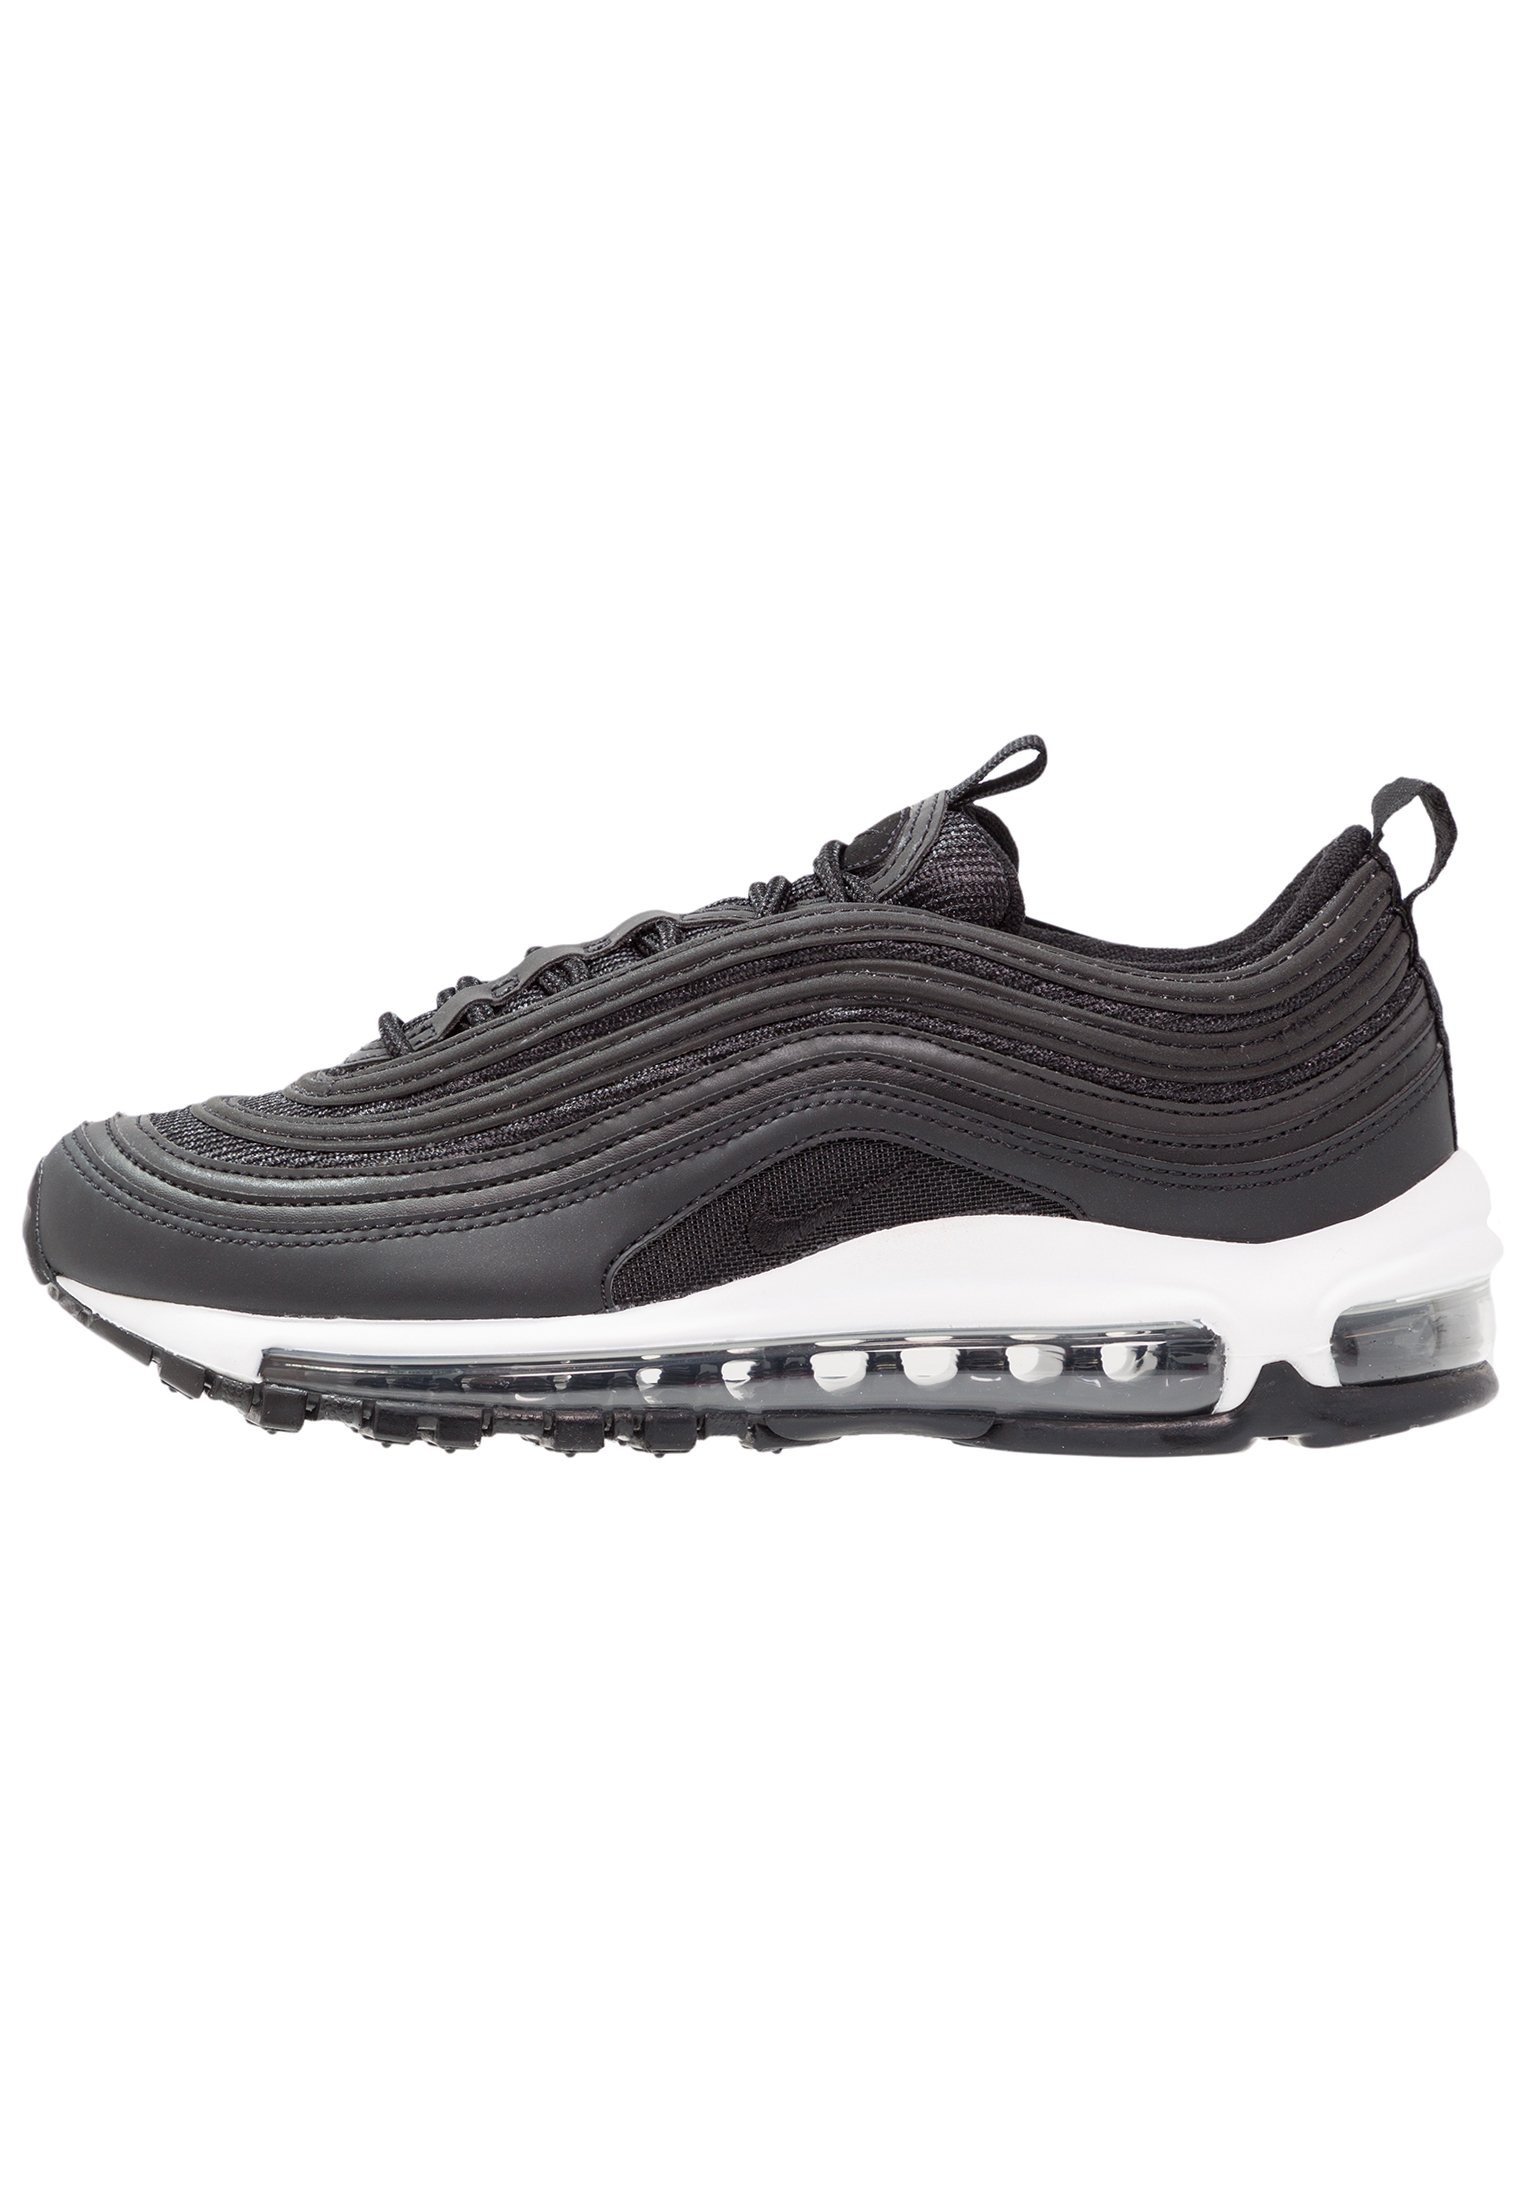 AIR MAX 97 Sneakers laag blackdark grey